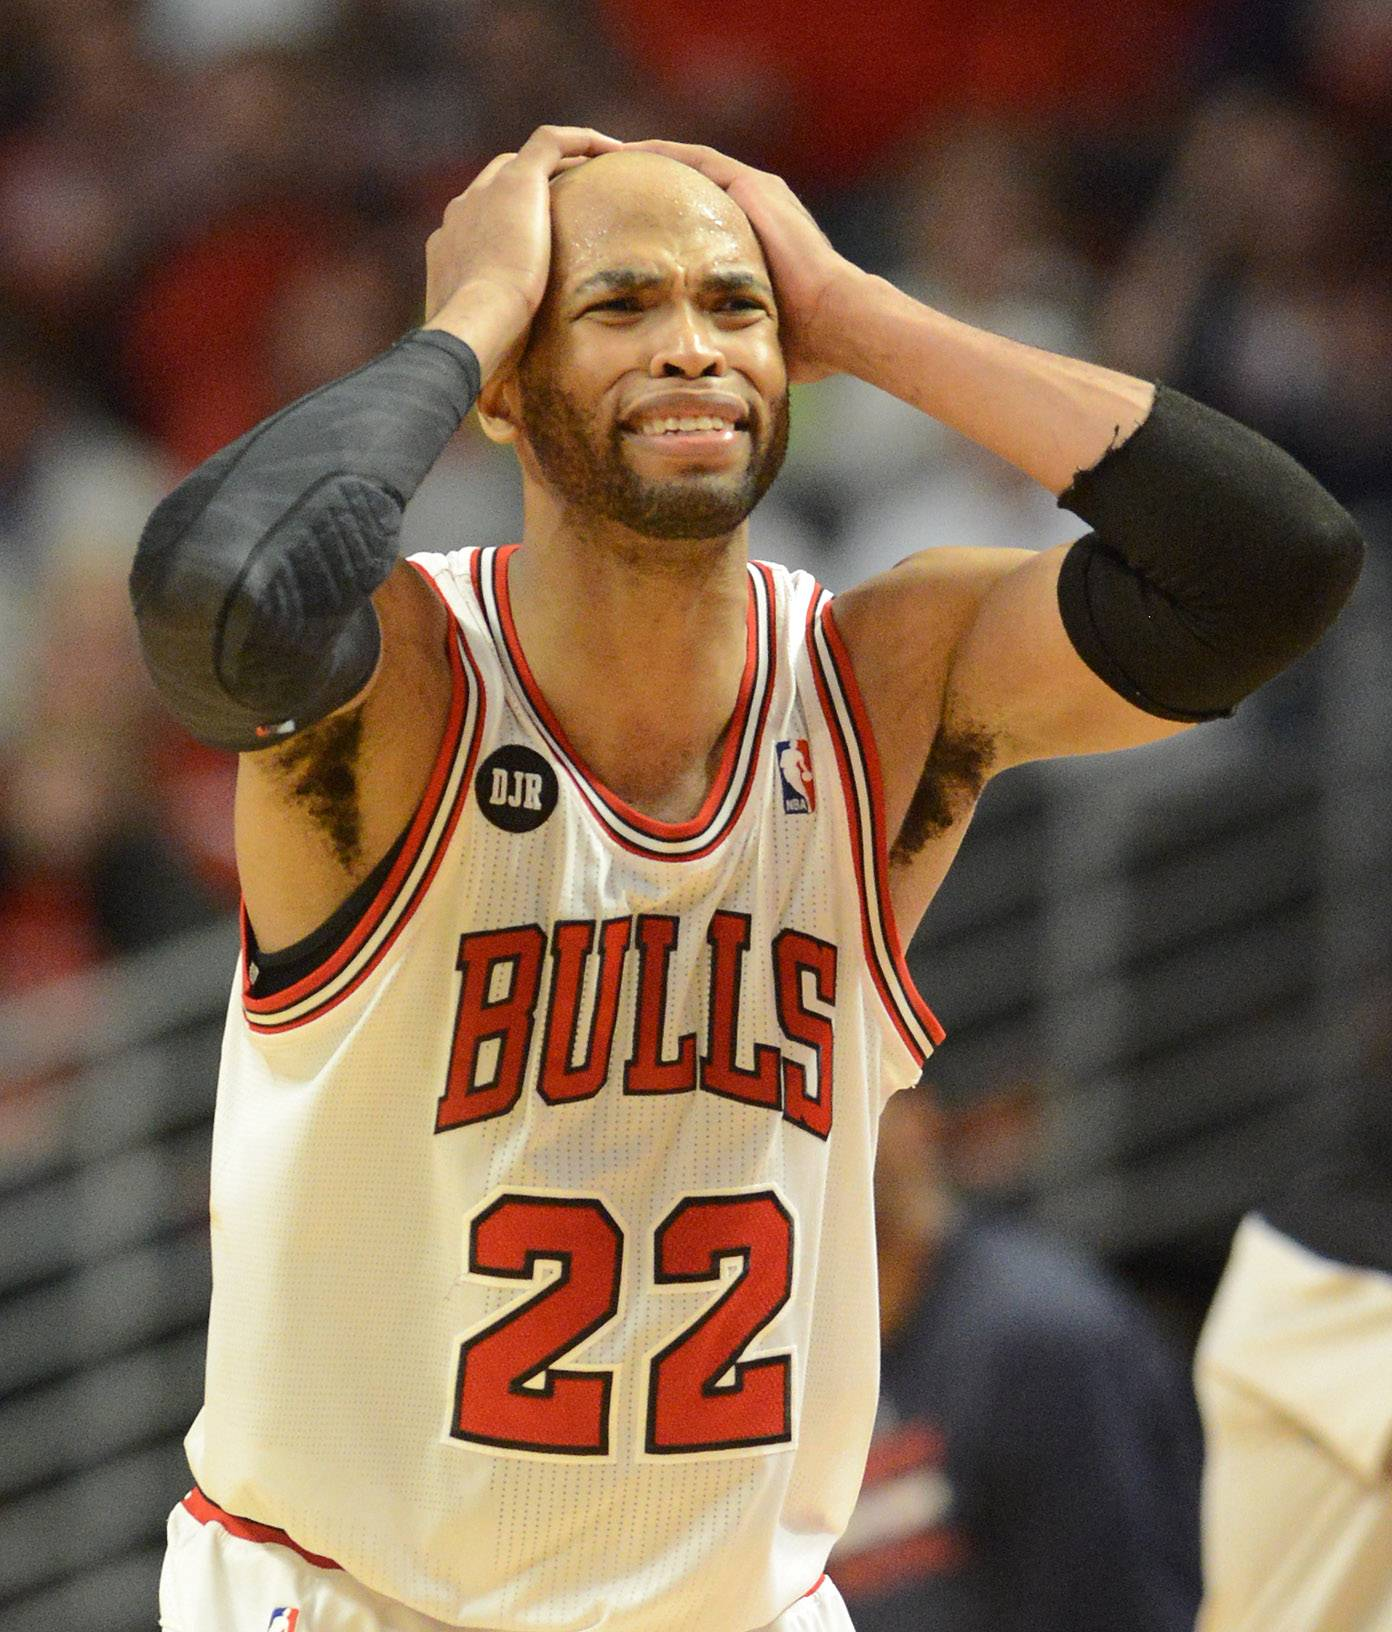 Taj Gibson reacts as the Wizards start to gain the upper hand during Tuesday's game at the United Center. Gibson also was upset at some game-changing calls made by officials.